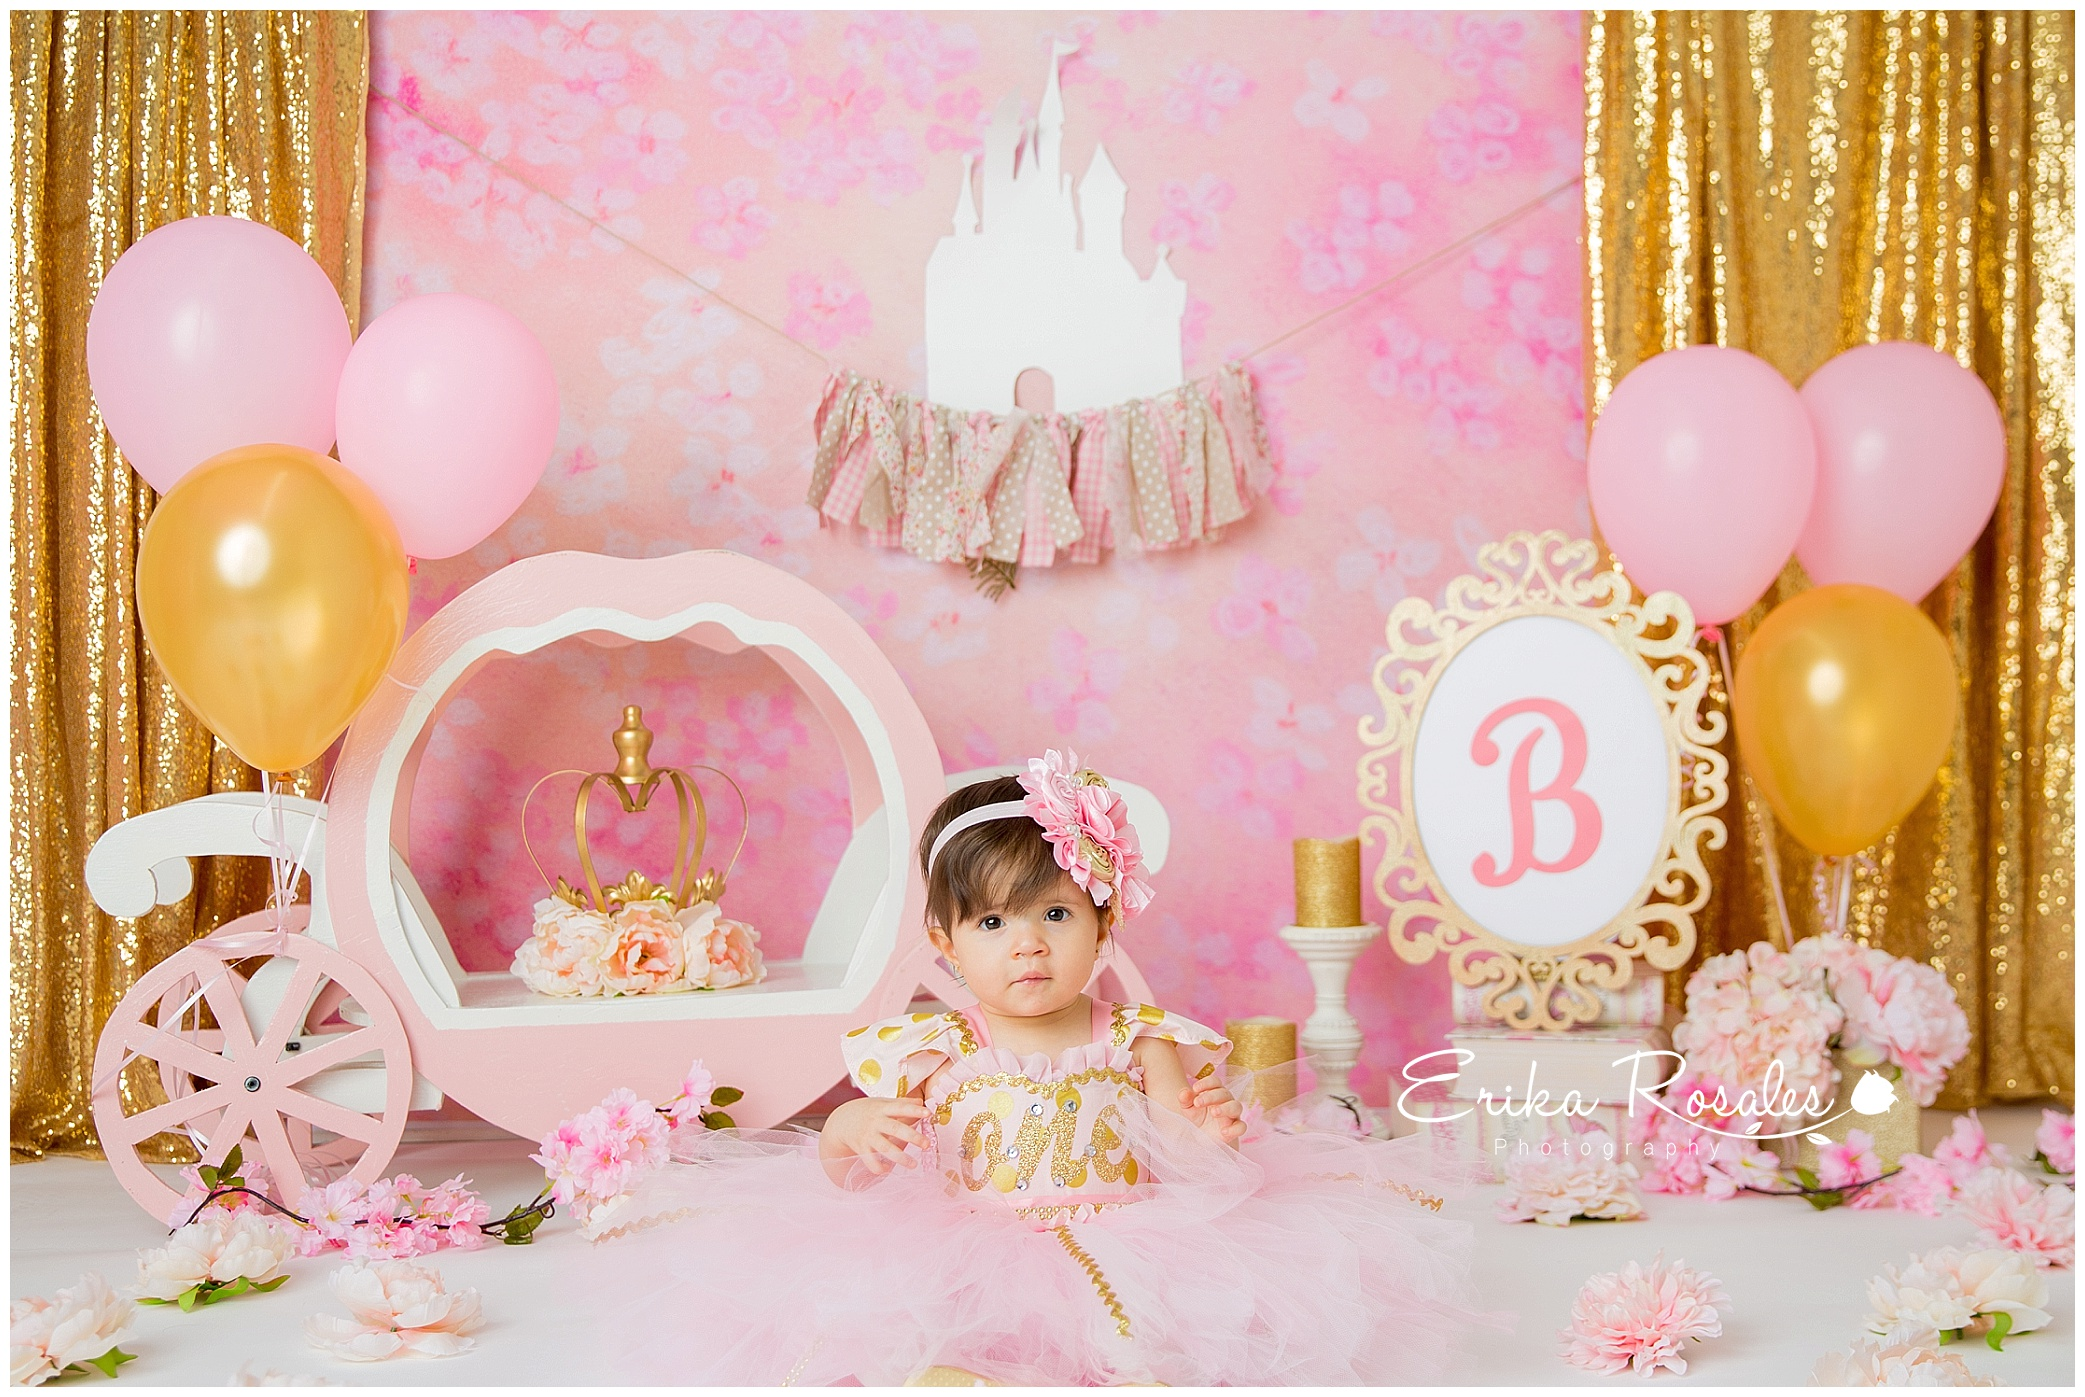 Baby One Year Old Archives Erika Rosales New York Photo Studio